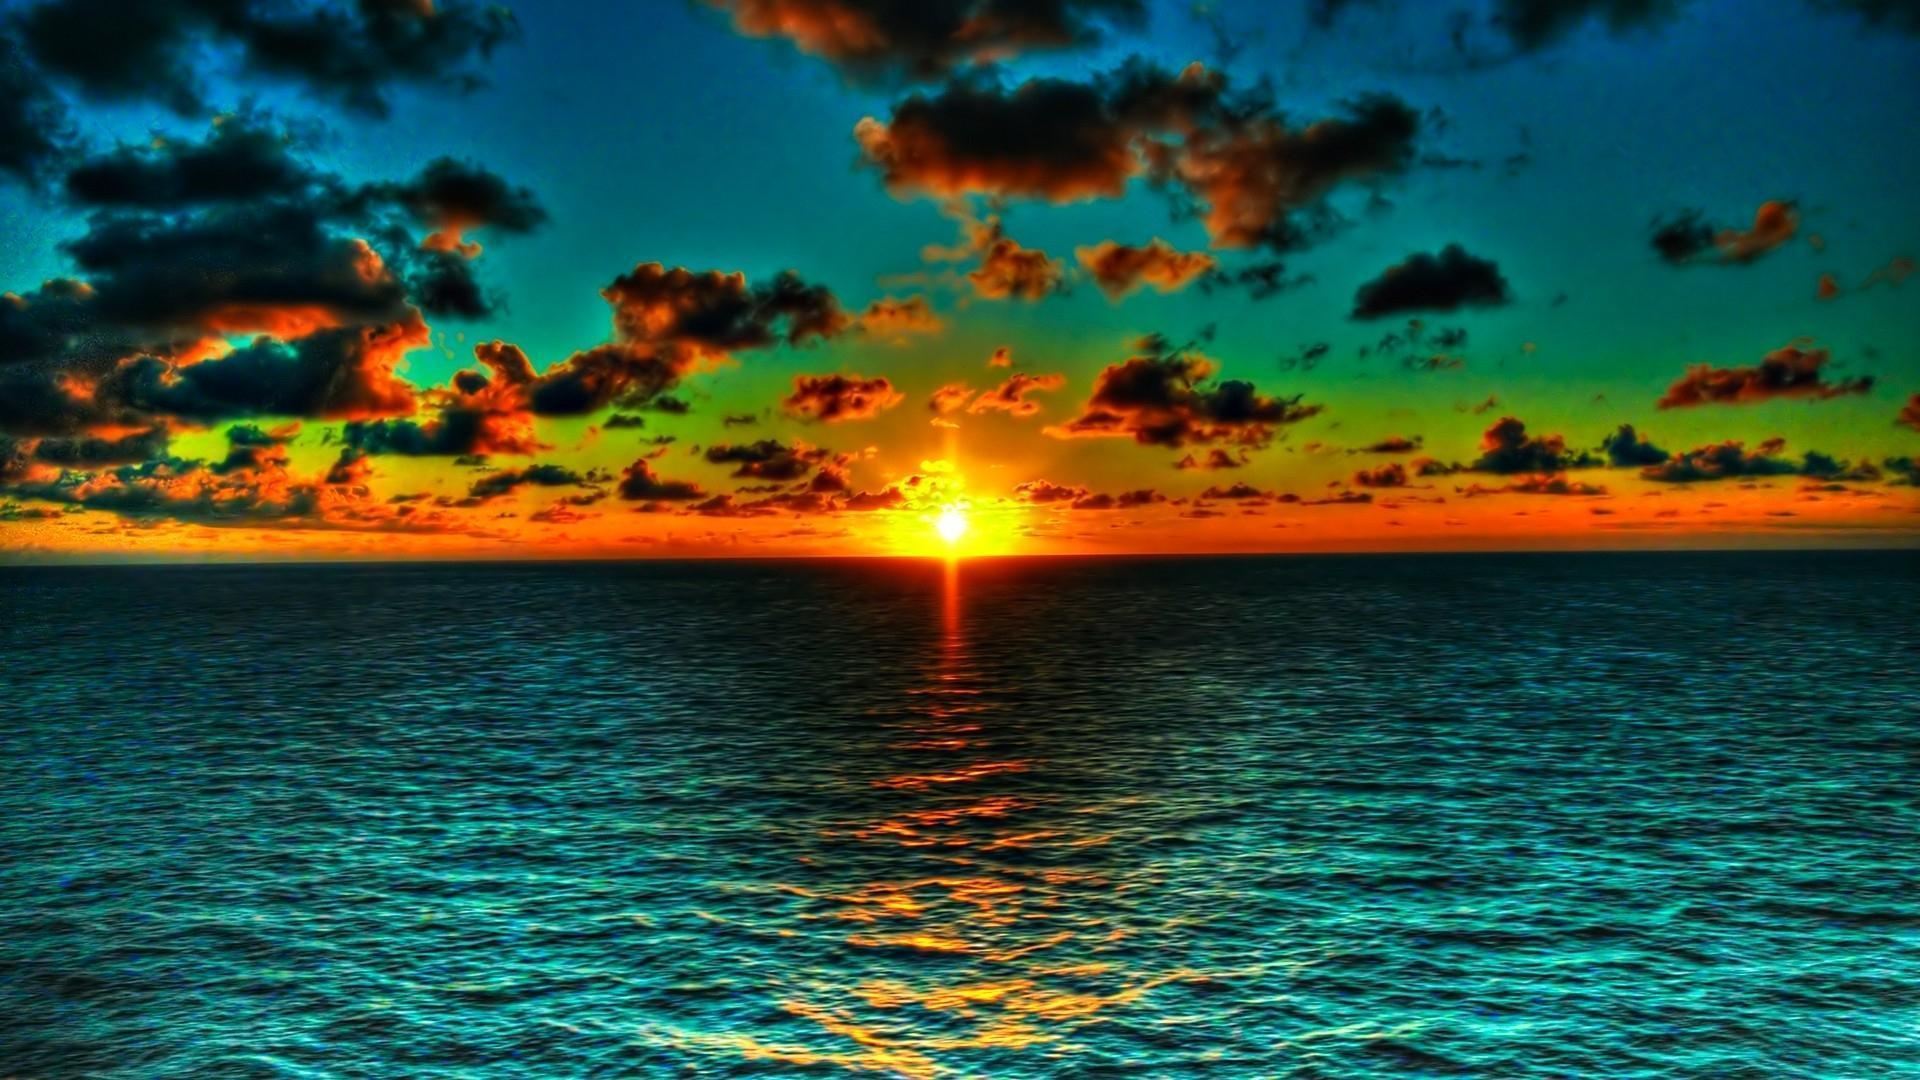 40 Ocean Sunset Desktop Wallpapers   Download at WallpaperBro 1920x1080